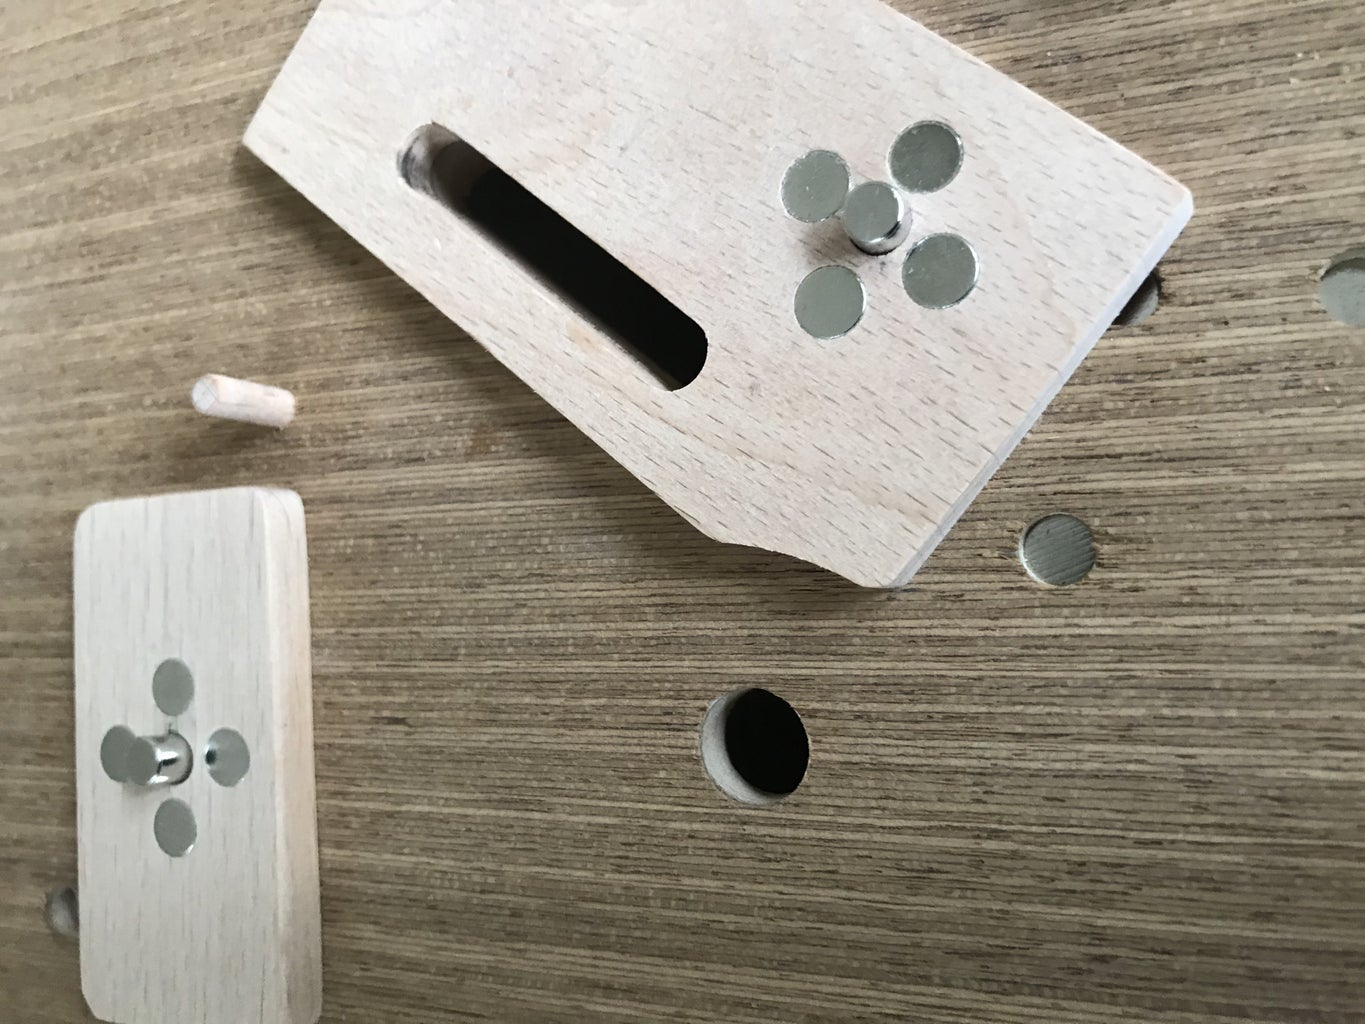 Locking Pin, Magnetic Pins and Corner Pieces